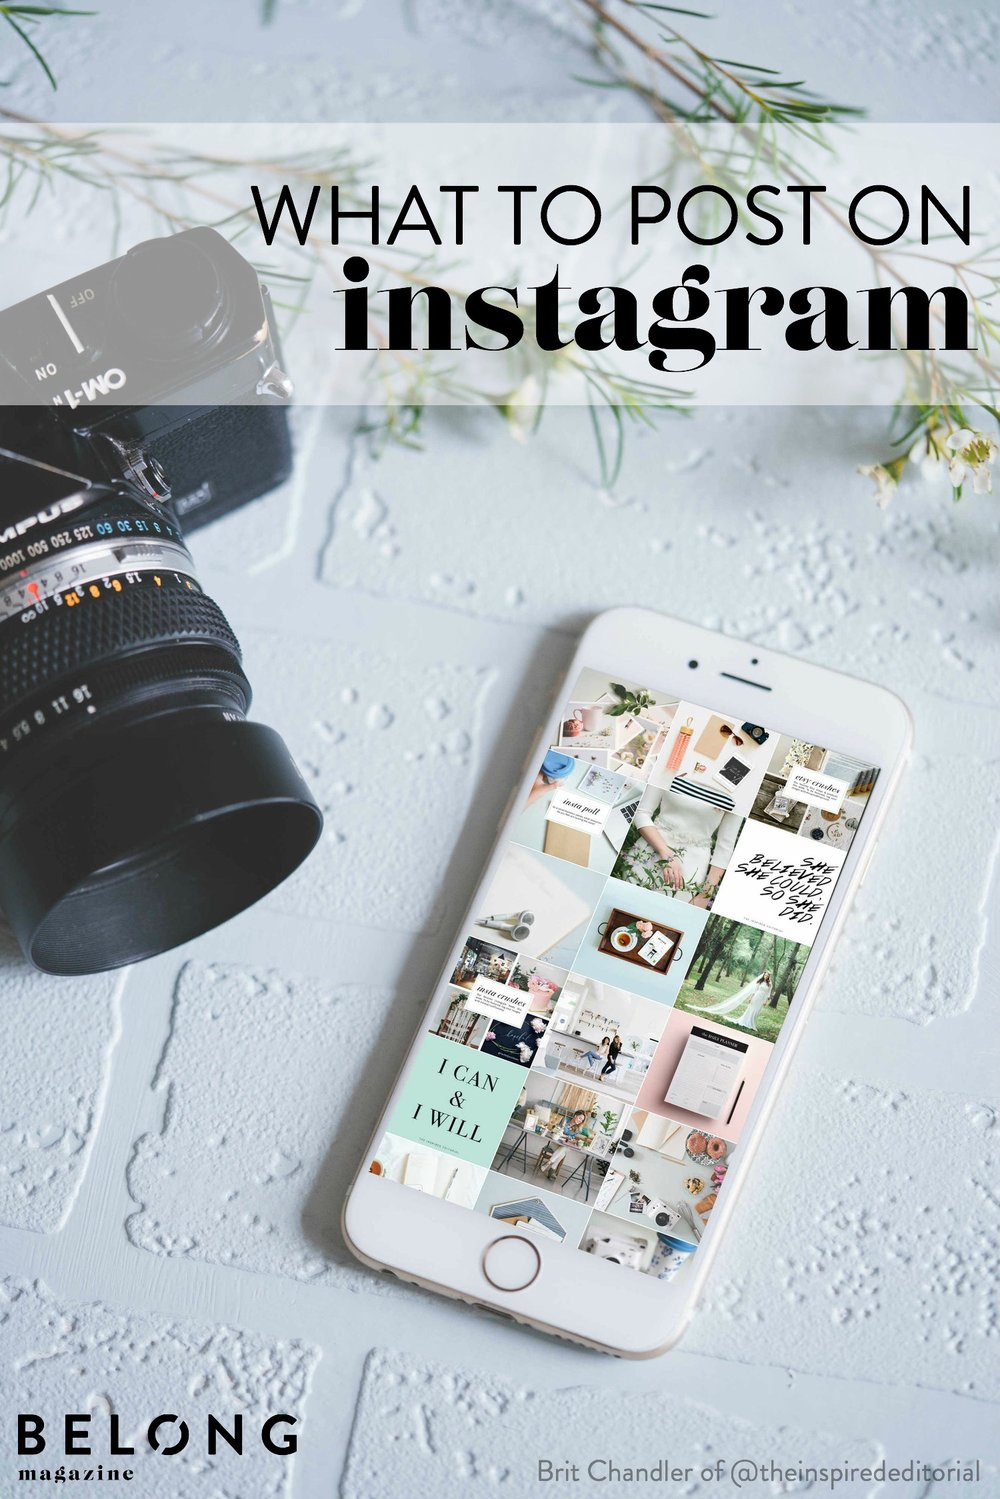 what to post on instagram with brit chandler of the inspired editorial on the belong magazine blog for female entrepreneurs, bloggers and women in the social media realm - lady boss, businesswomen